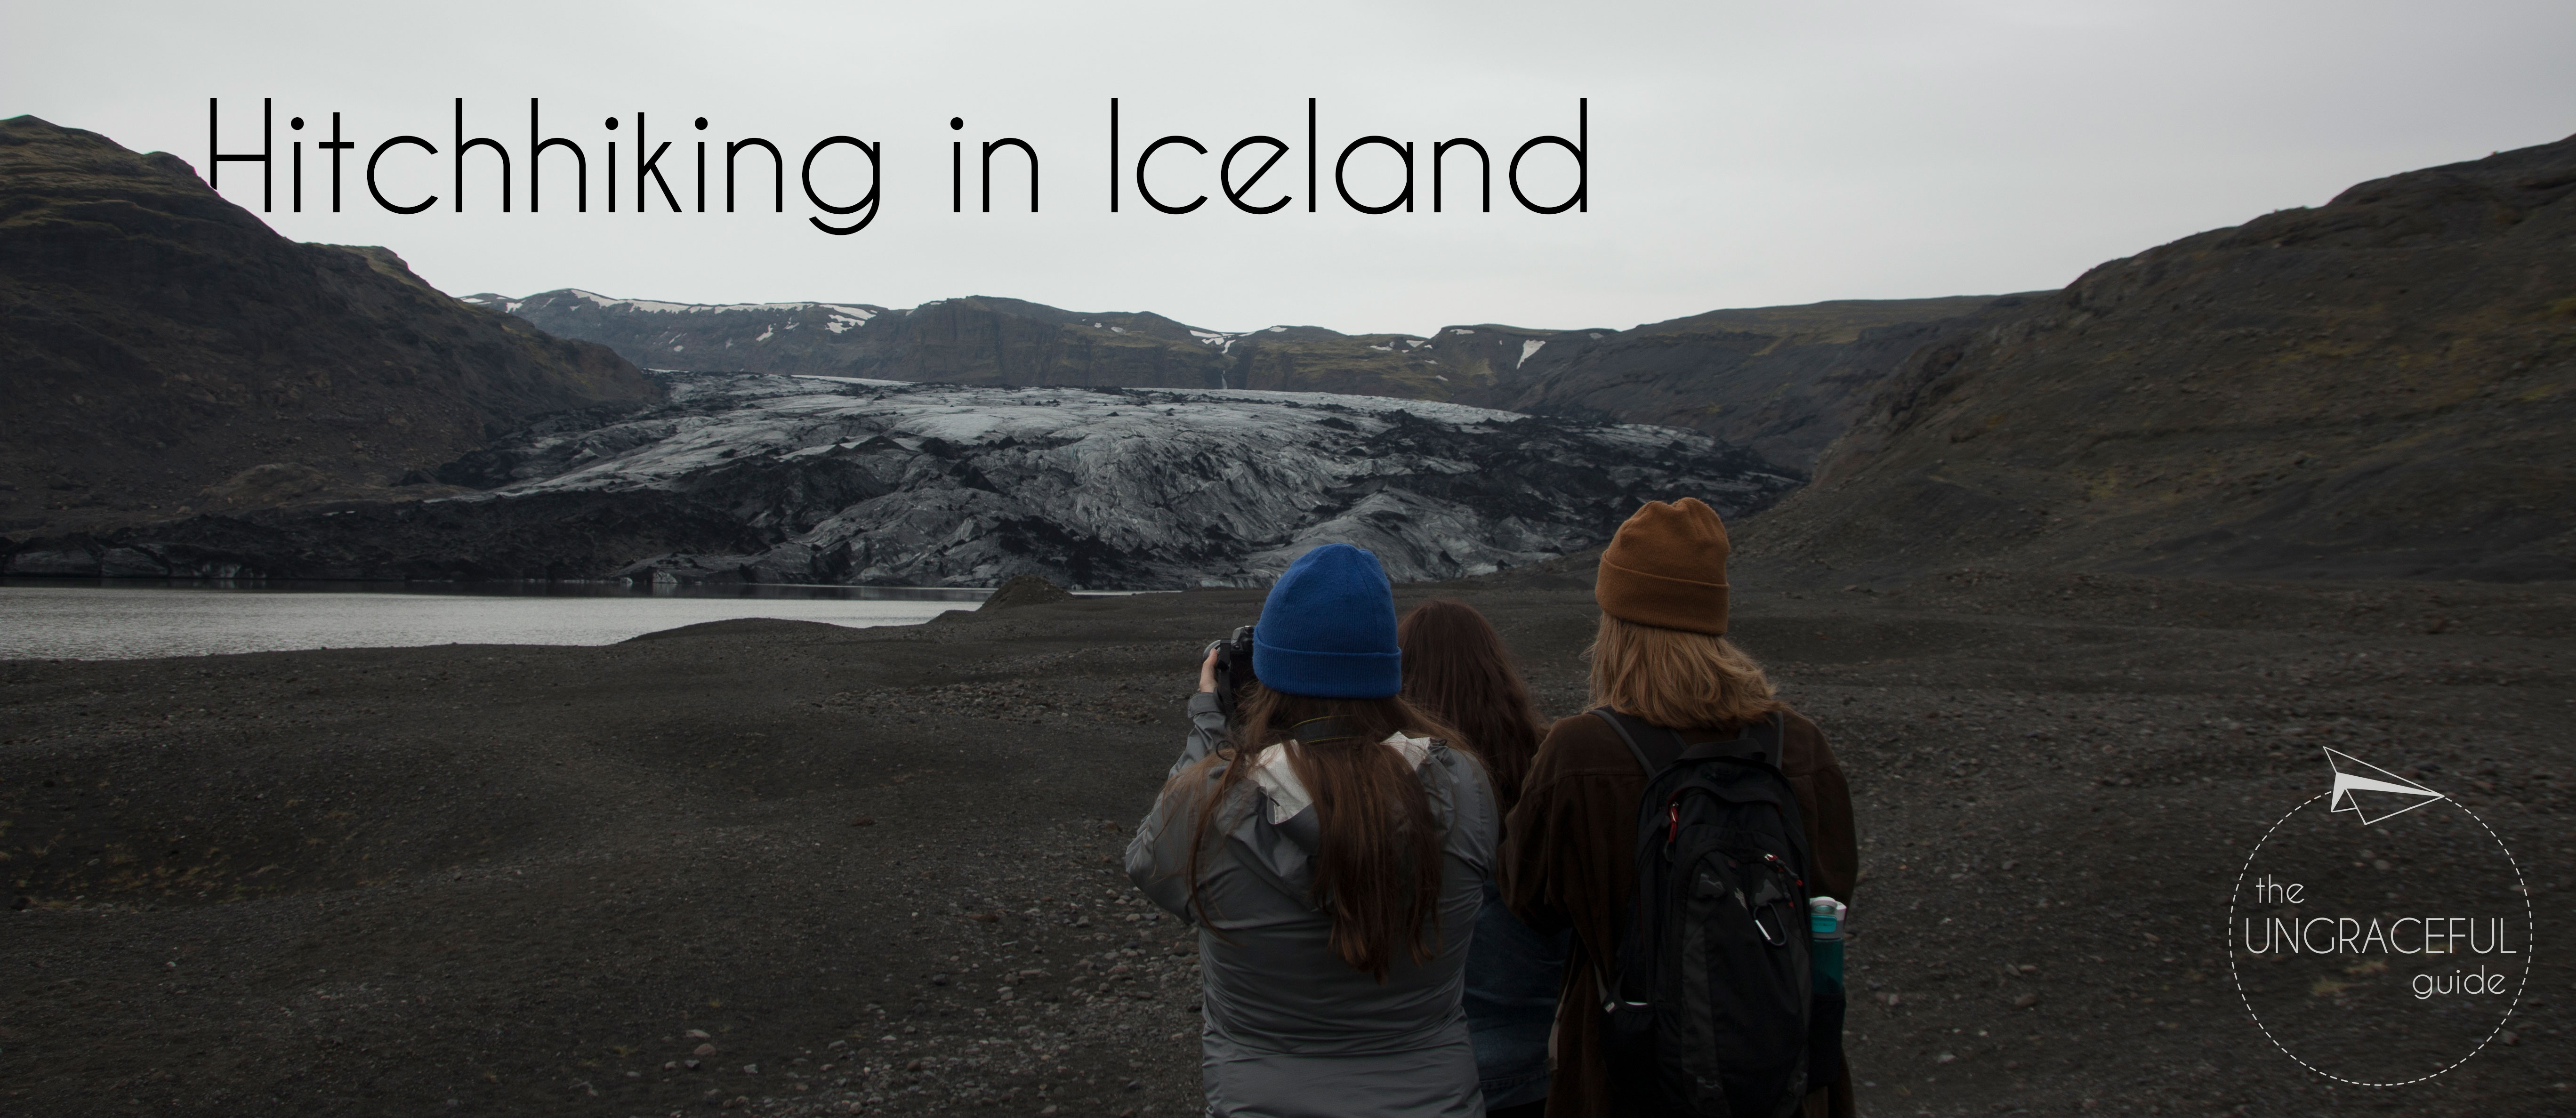 """<img src=""""images/"""" width=""""800"""" height=""""600"""" alt=""""iceland - hitchhikinh - Iceland: How to get the most on a budget"""">"""